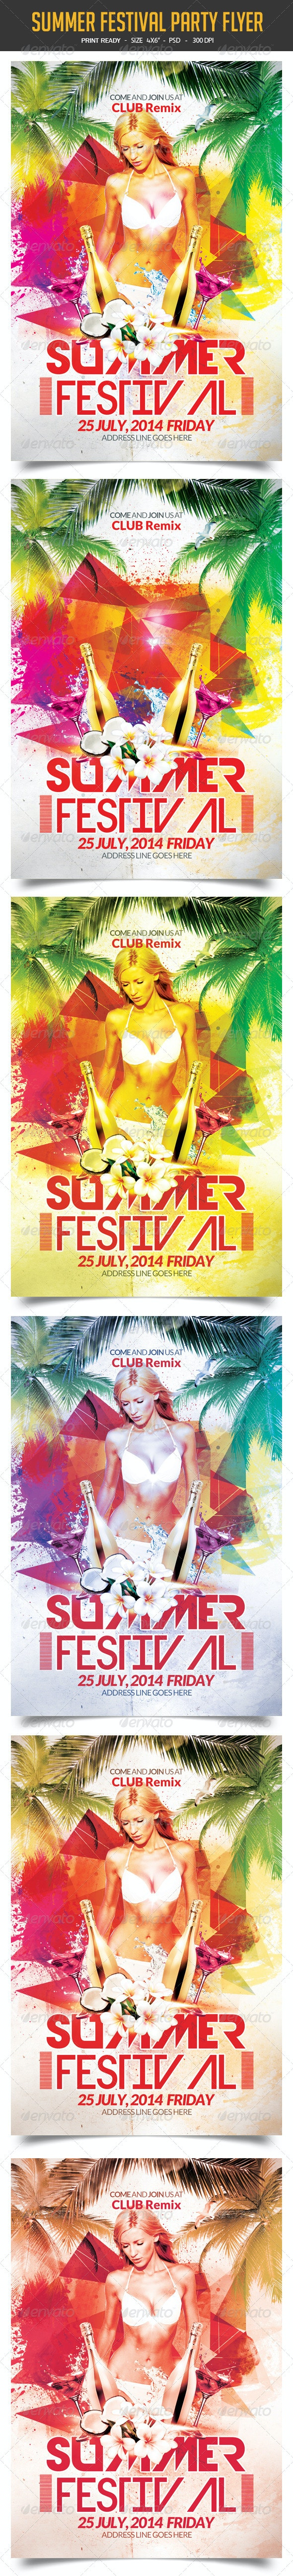 Summer Festival Party Flyer - Clubs & Parties Events